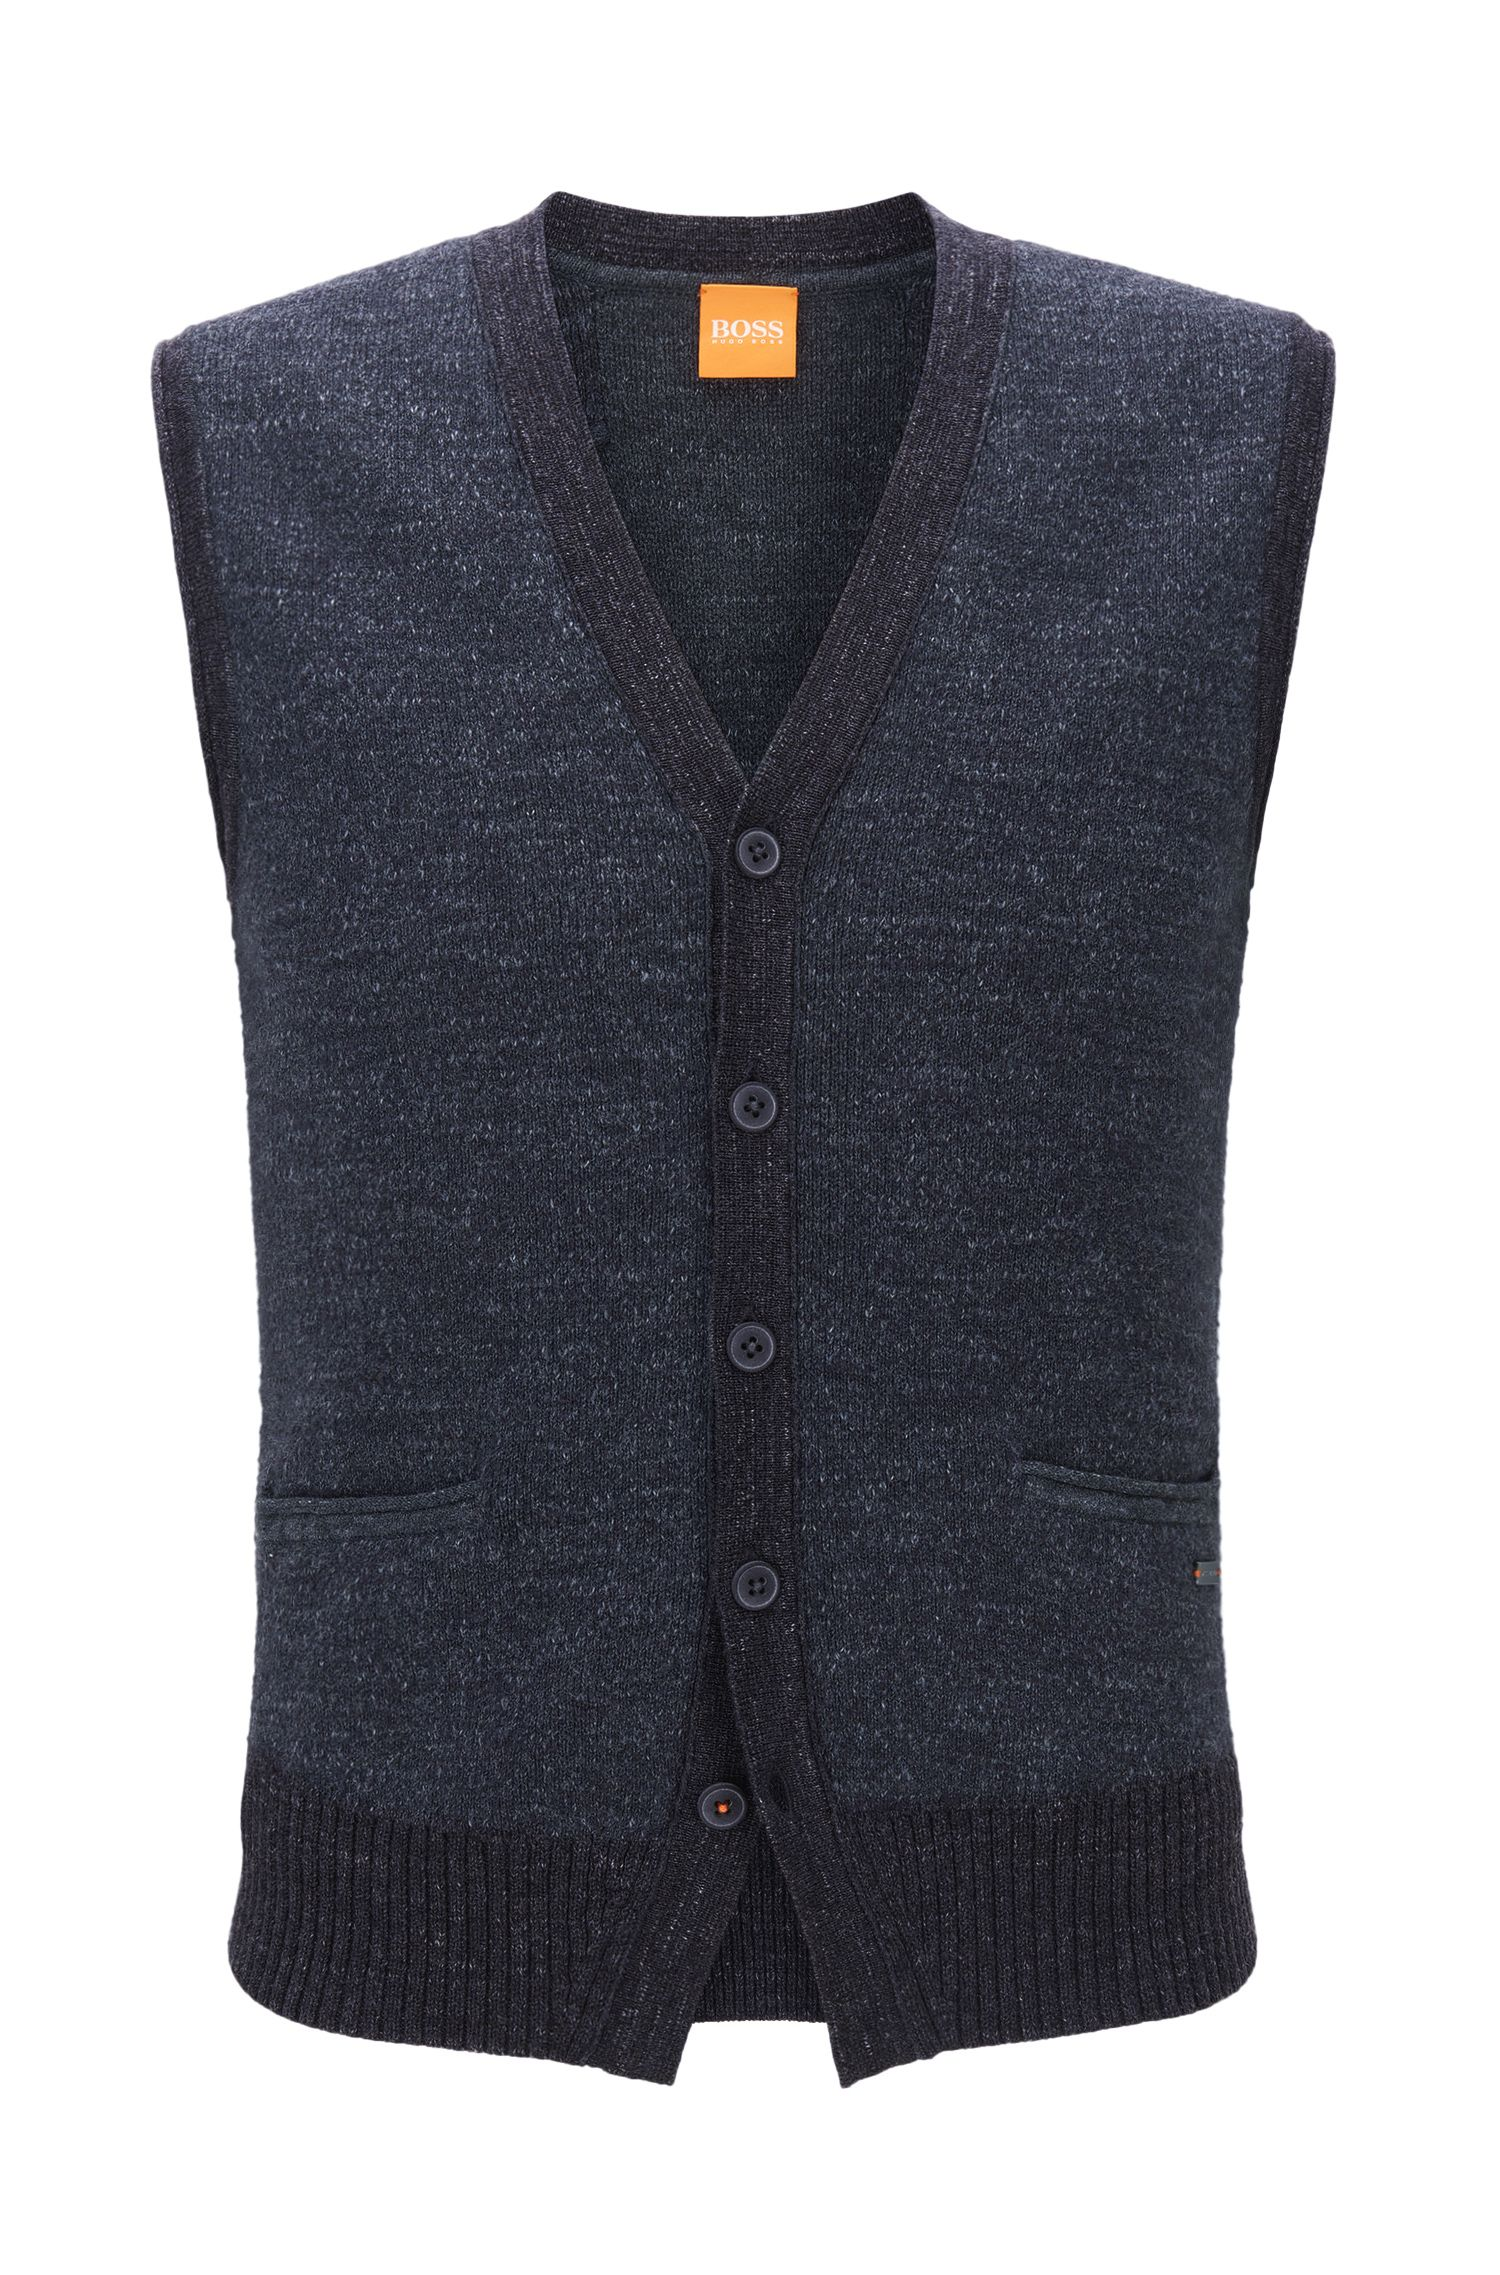 Five-button waistcoat in knitted cotton